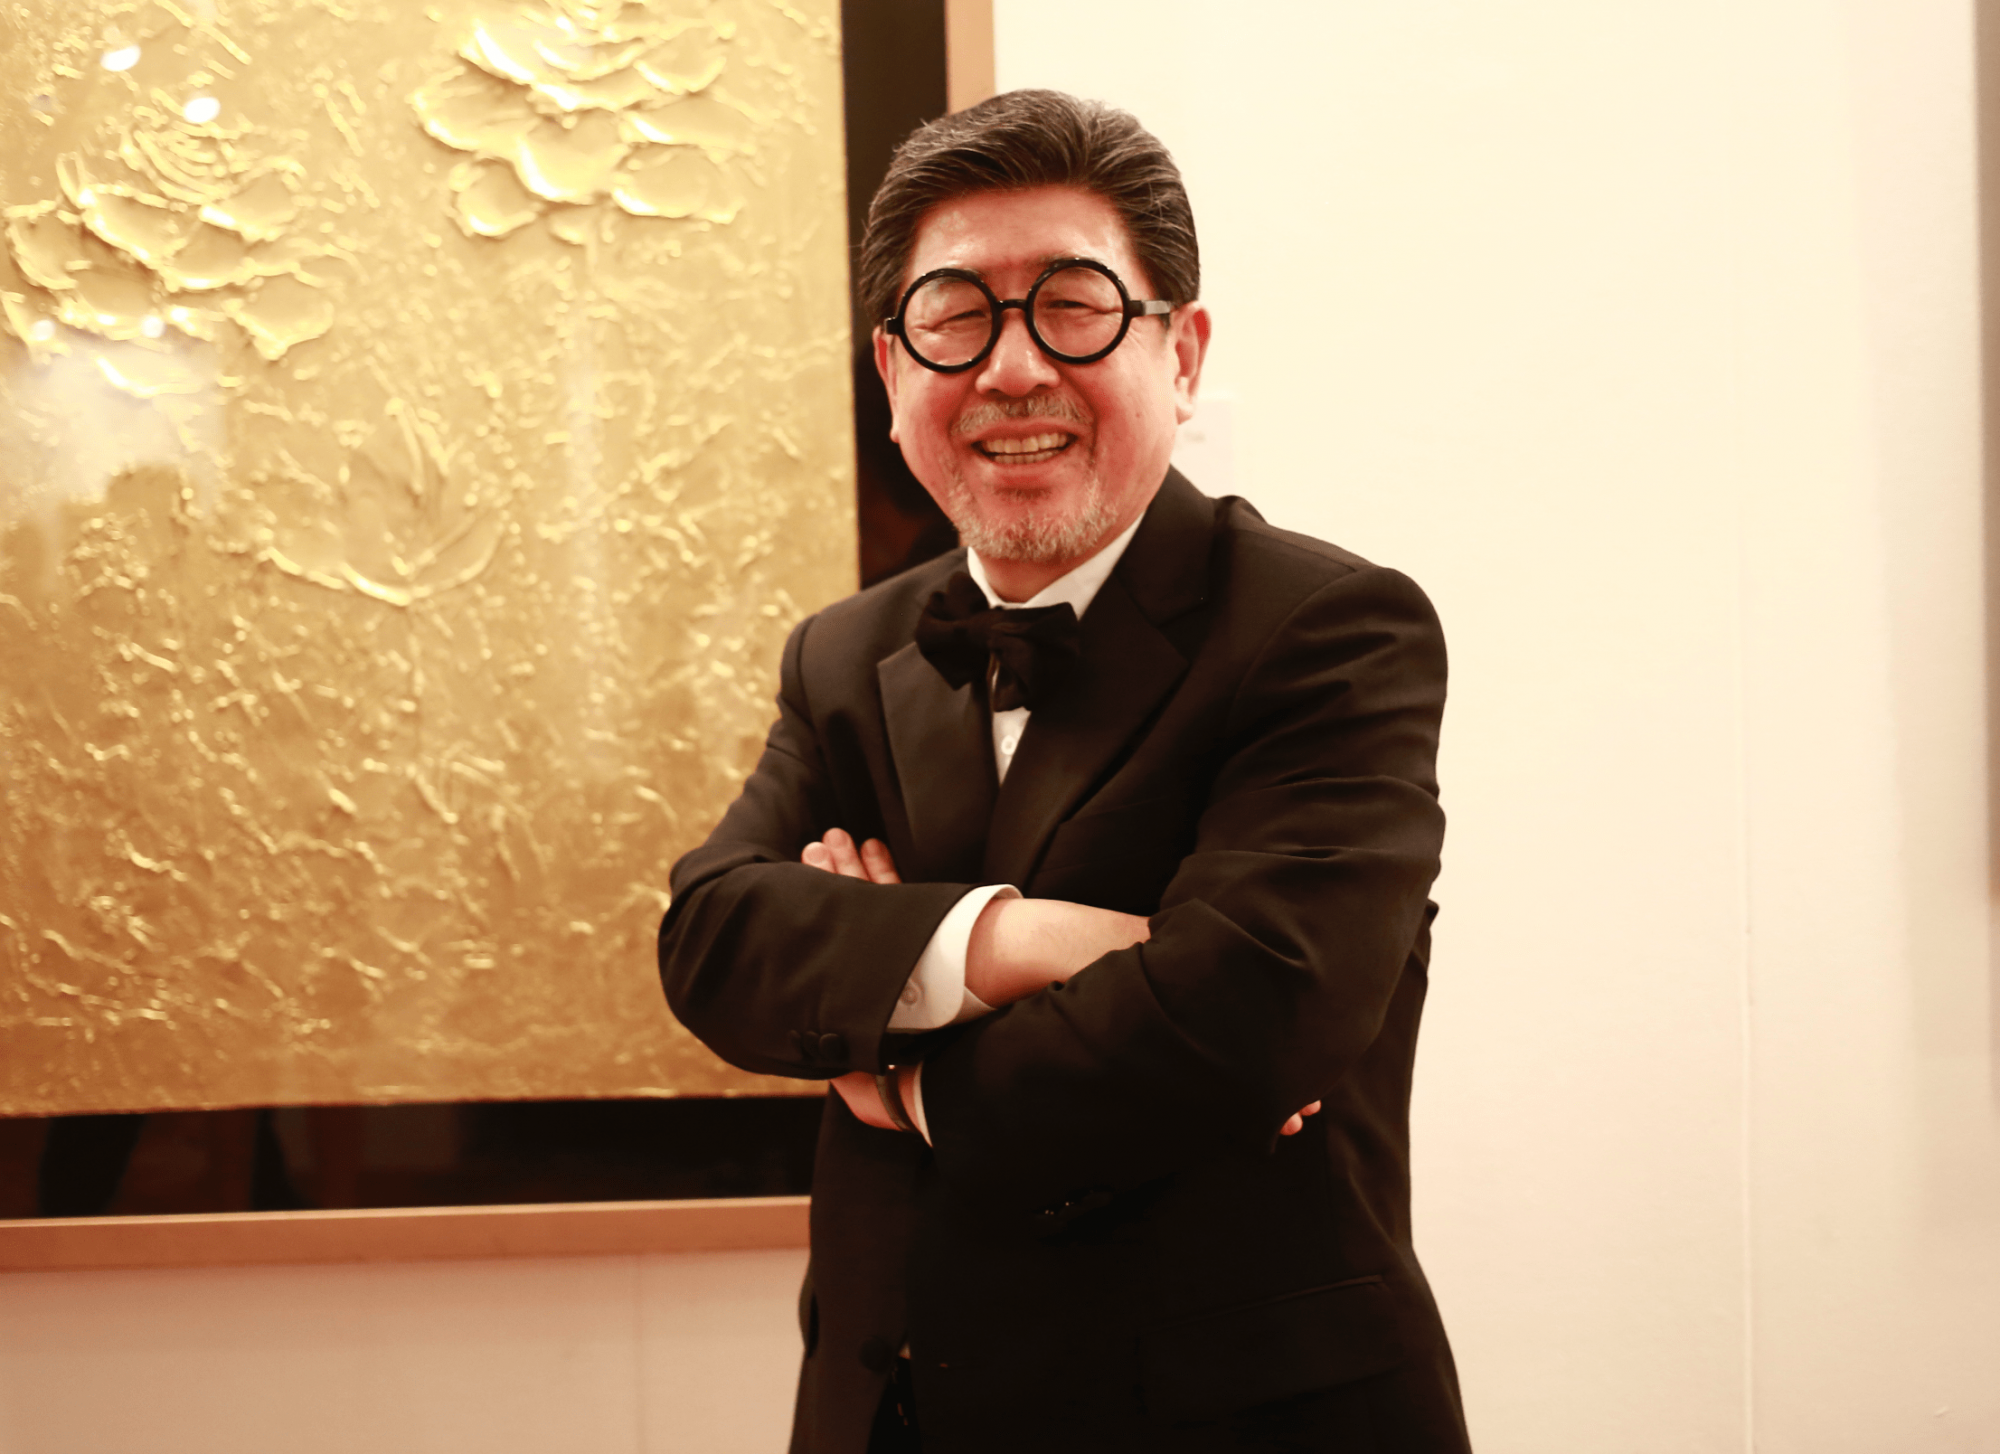 Meet The South Korean Artist Who Paints With 24K Gold, And Has Obama and Madonna As Clients